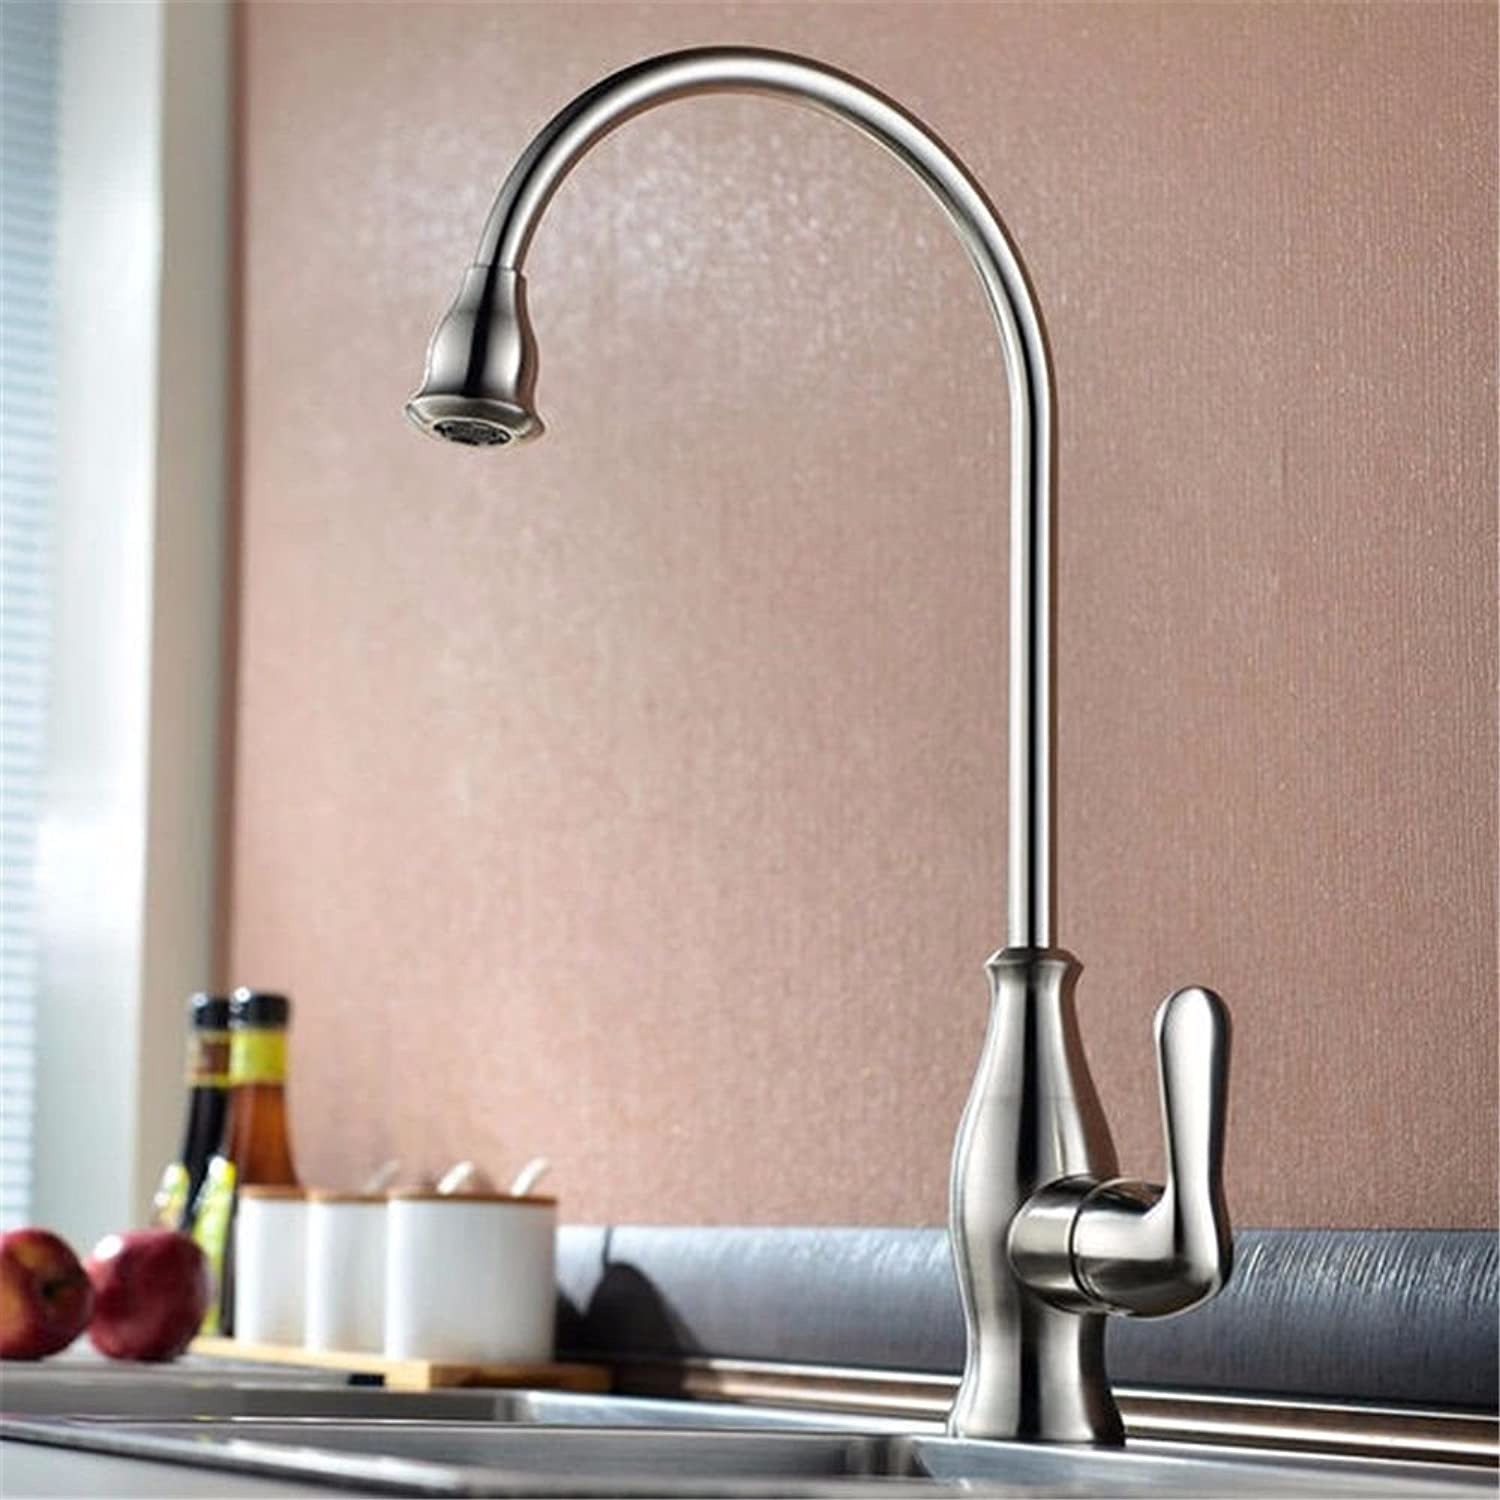 Lalaky Taps Faucet Kitchen Mixer Sink Waterfall Bathroom Mixer Basin Mixer Tap for Kitchen Bathroom and Washroom Hot and Cold All Copper redating Wire Drawing